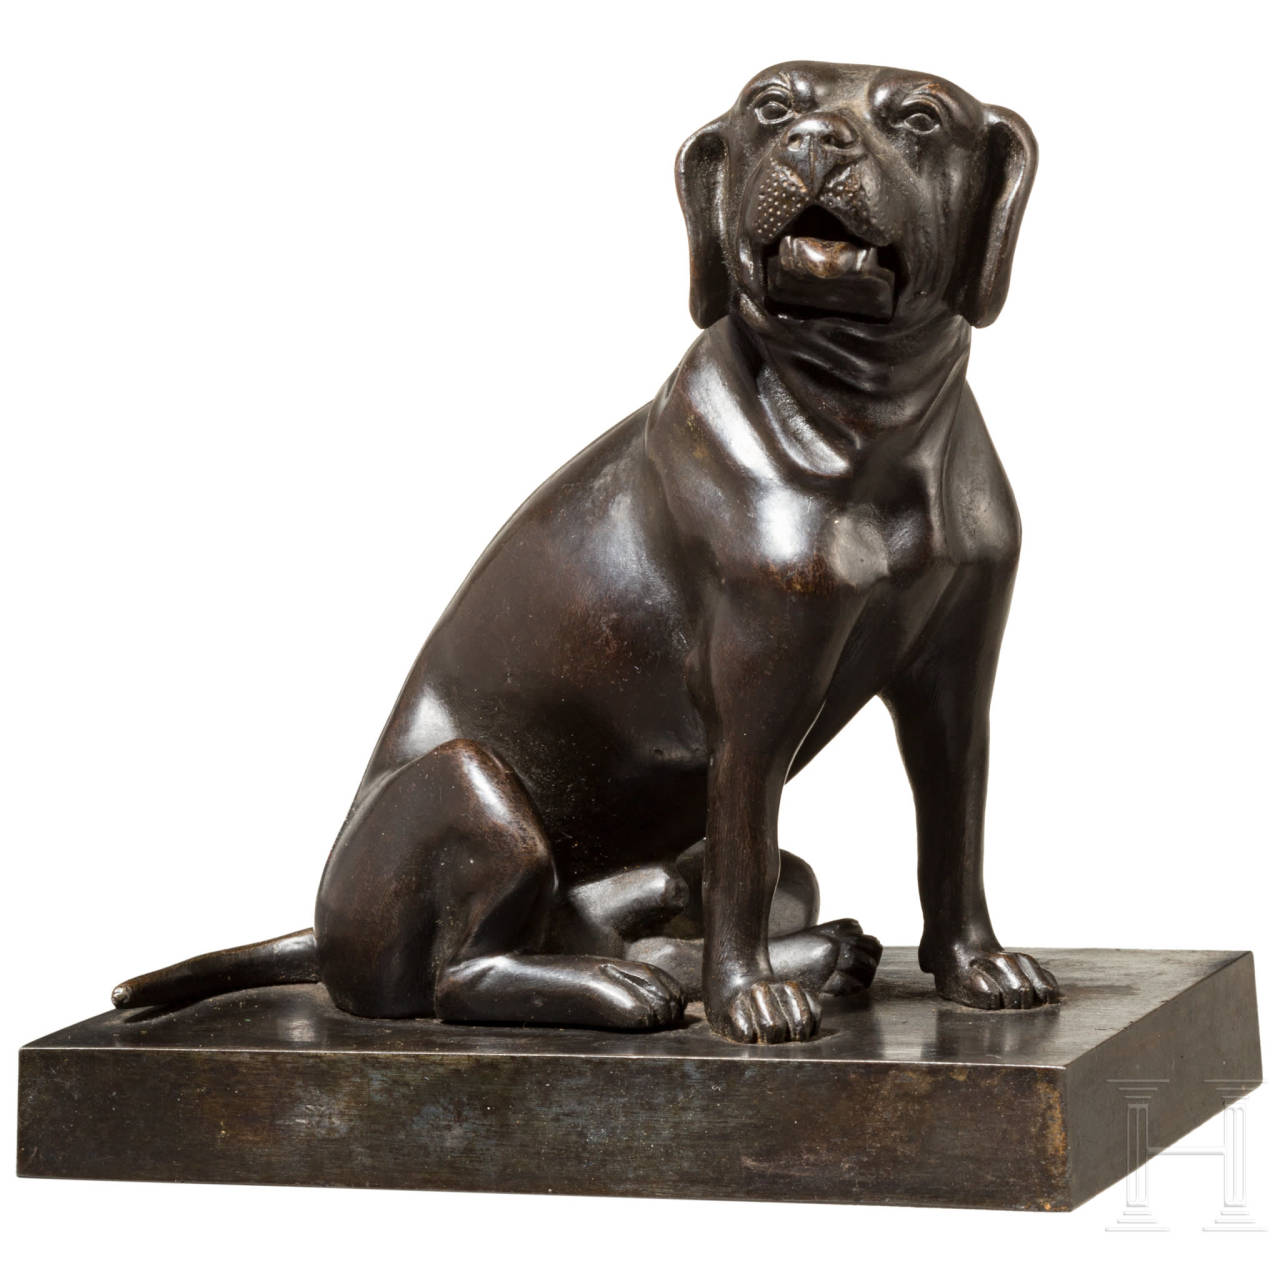 A Russian iron sculpture of a sitting dog as a card holder, Kasli, 19th century